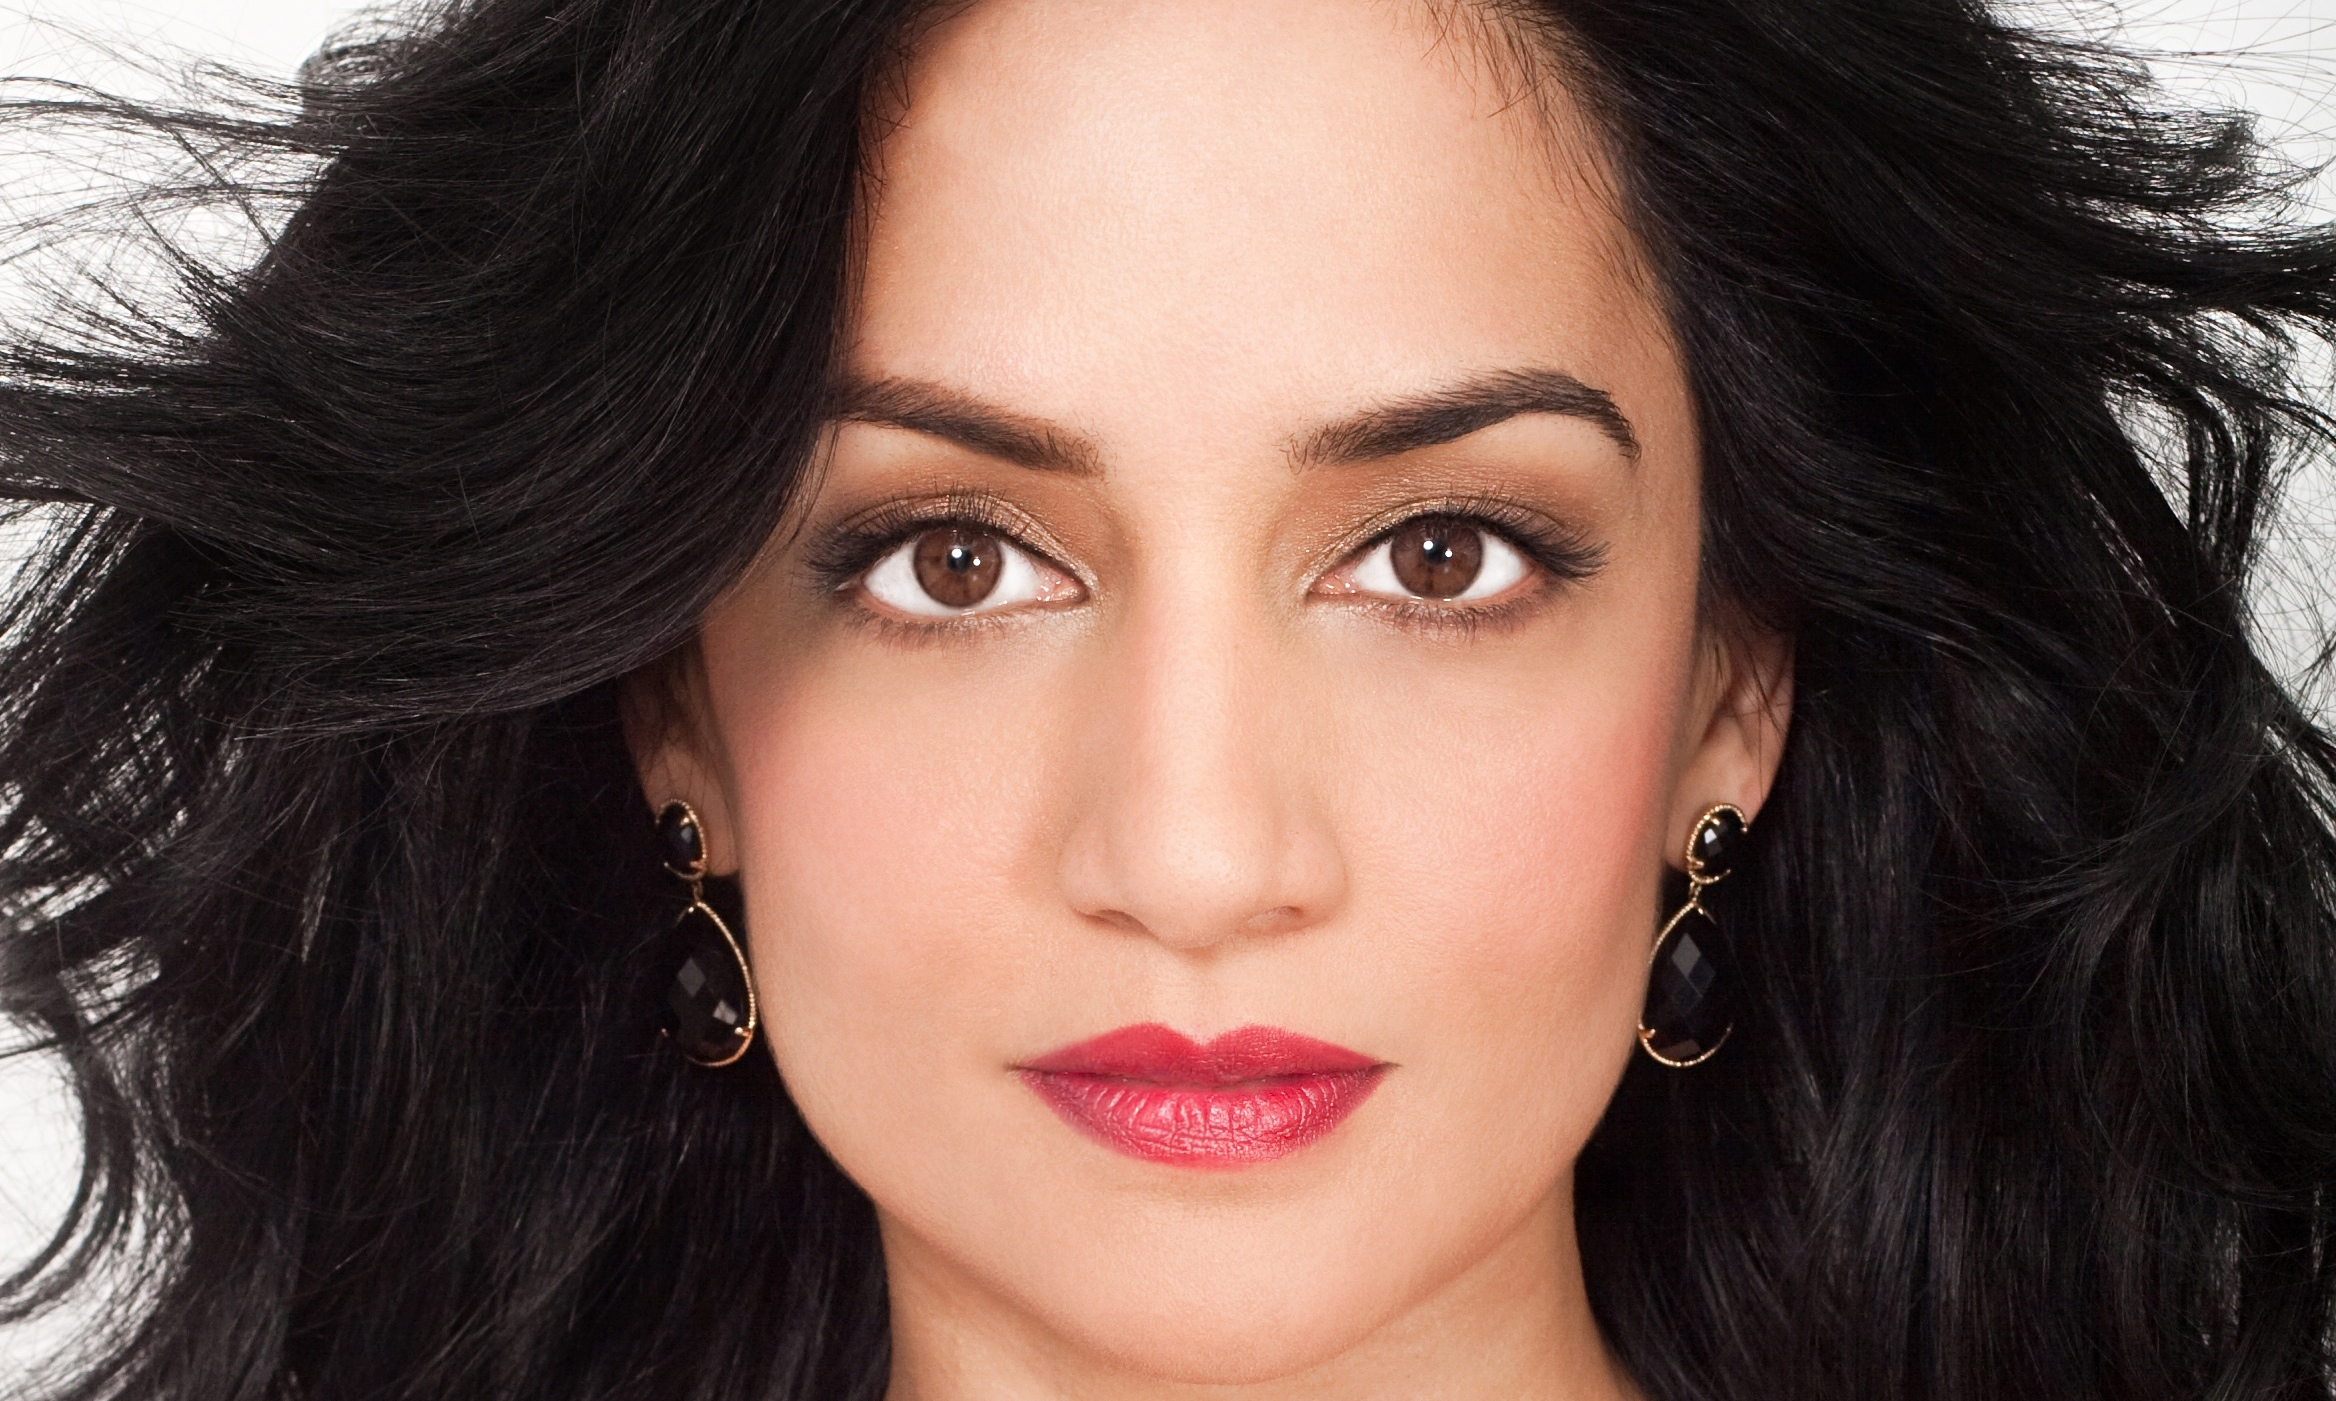 archie panjabi 4k widescreen desktop wallpaper 1128